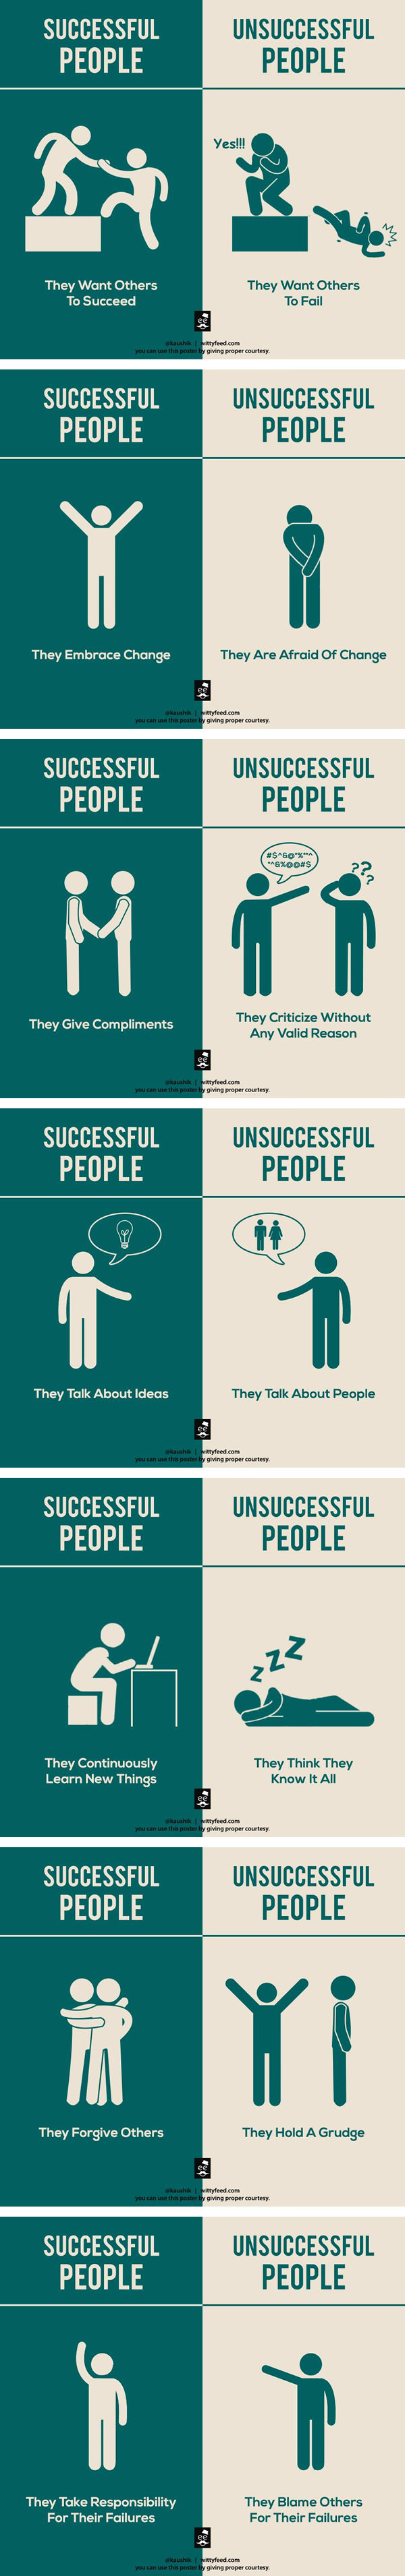 successful-people-vs-unsuccessful-people